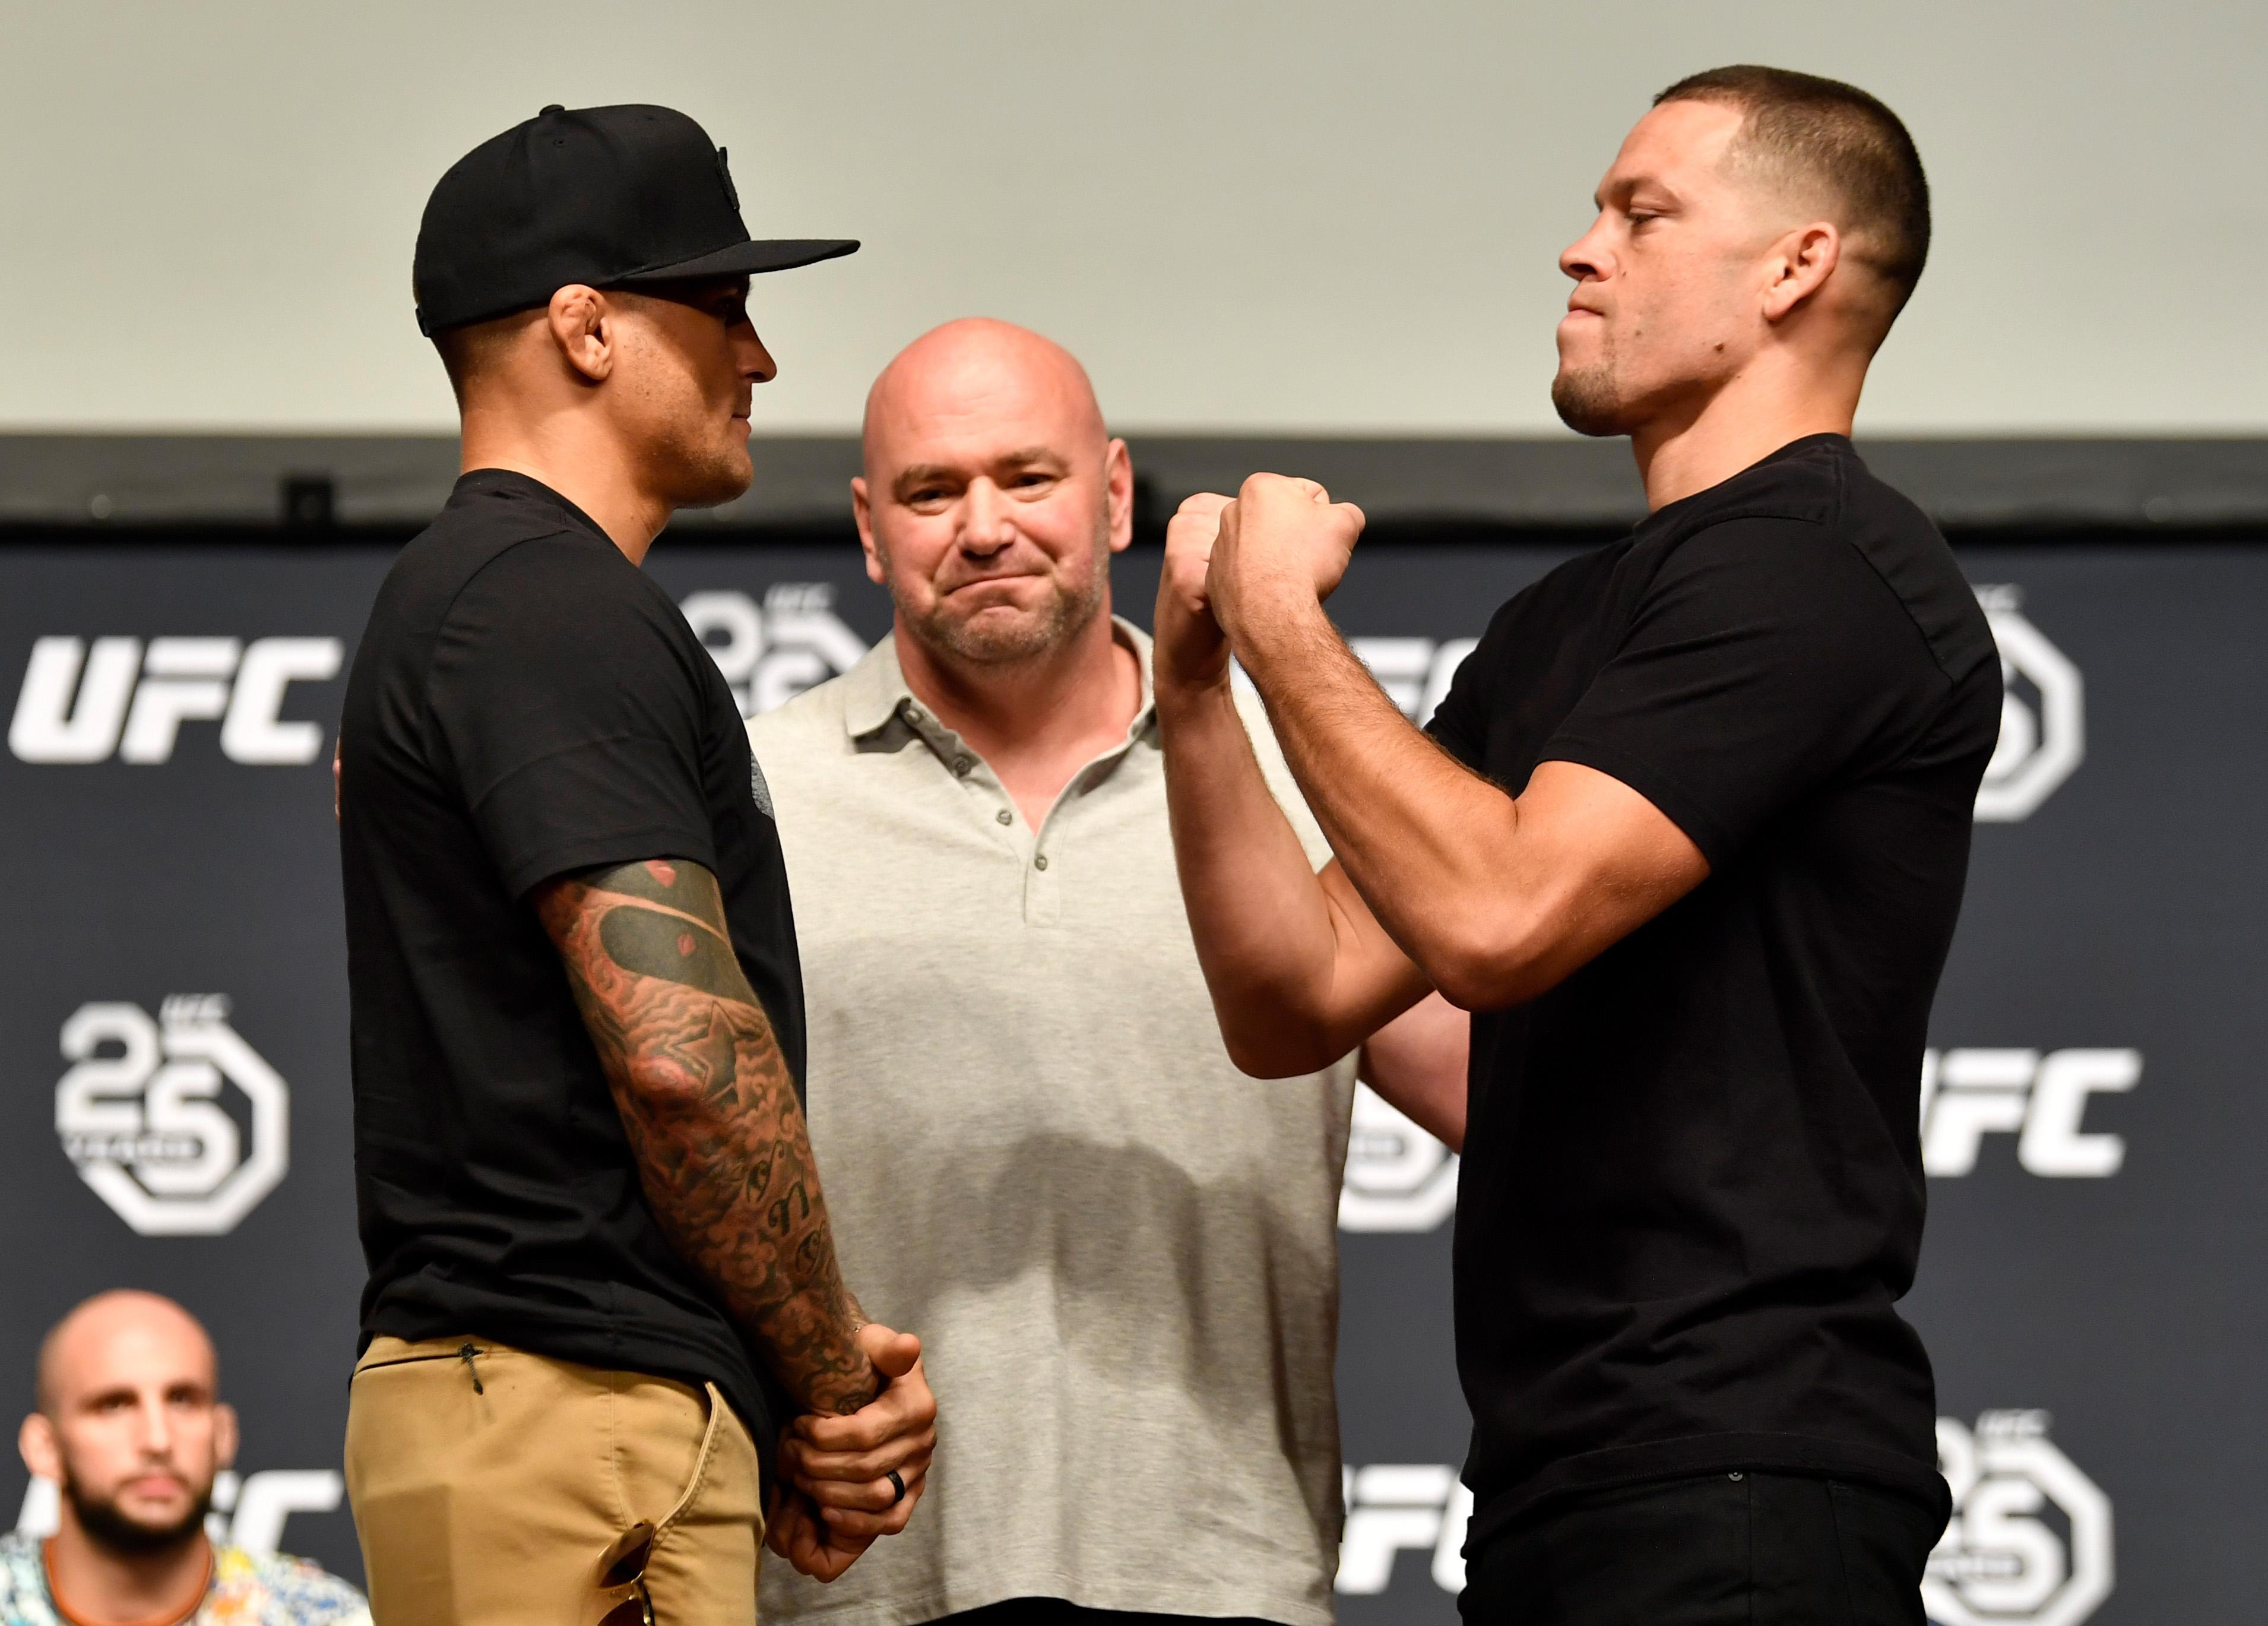 Nate Diaz and Dustin Poirier both tweeted out that they would be fighting in a new 165lbs weight division